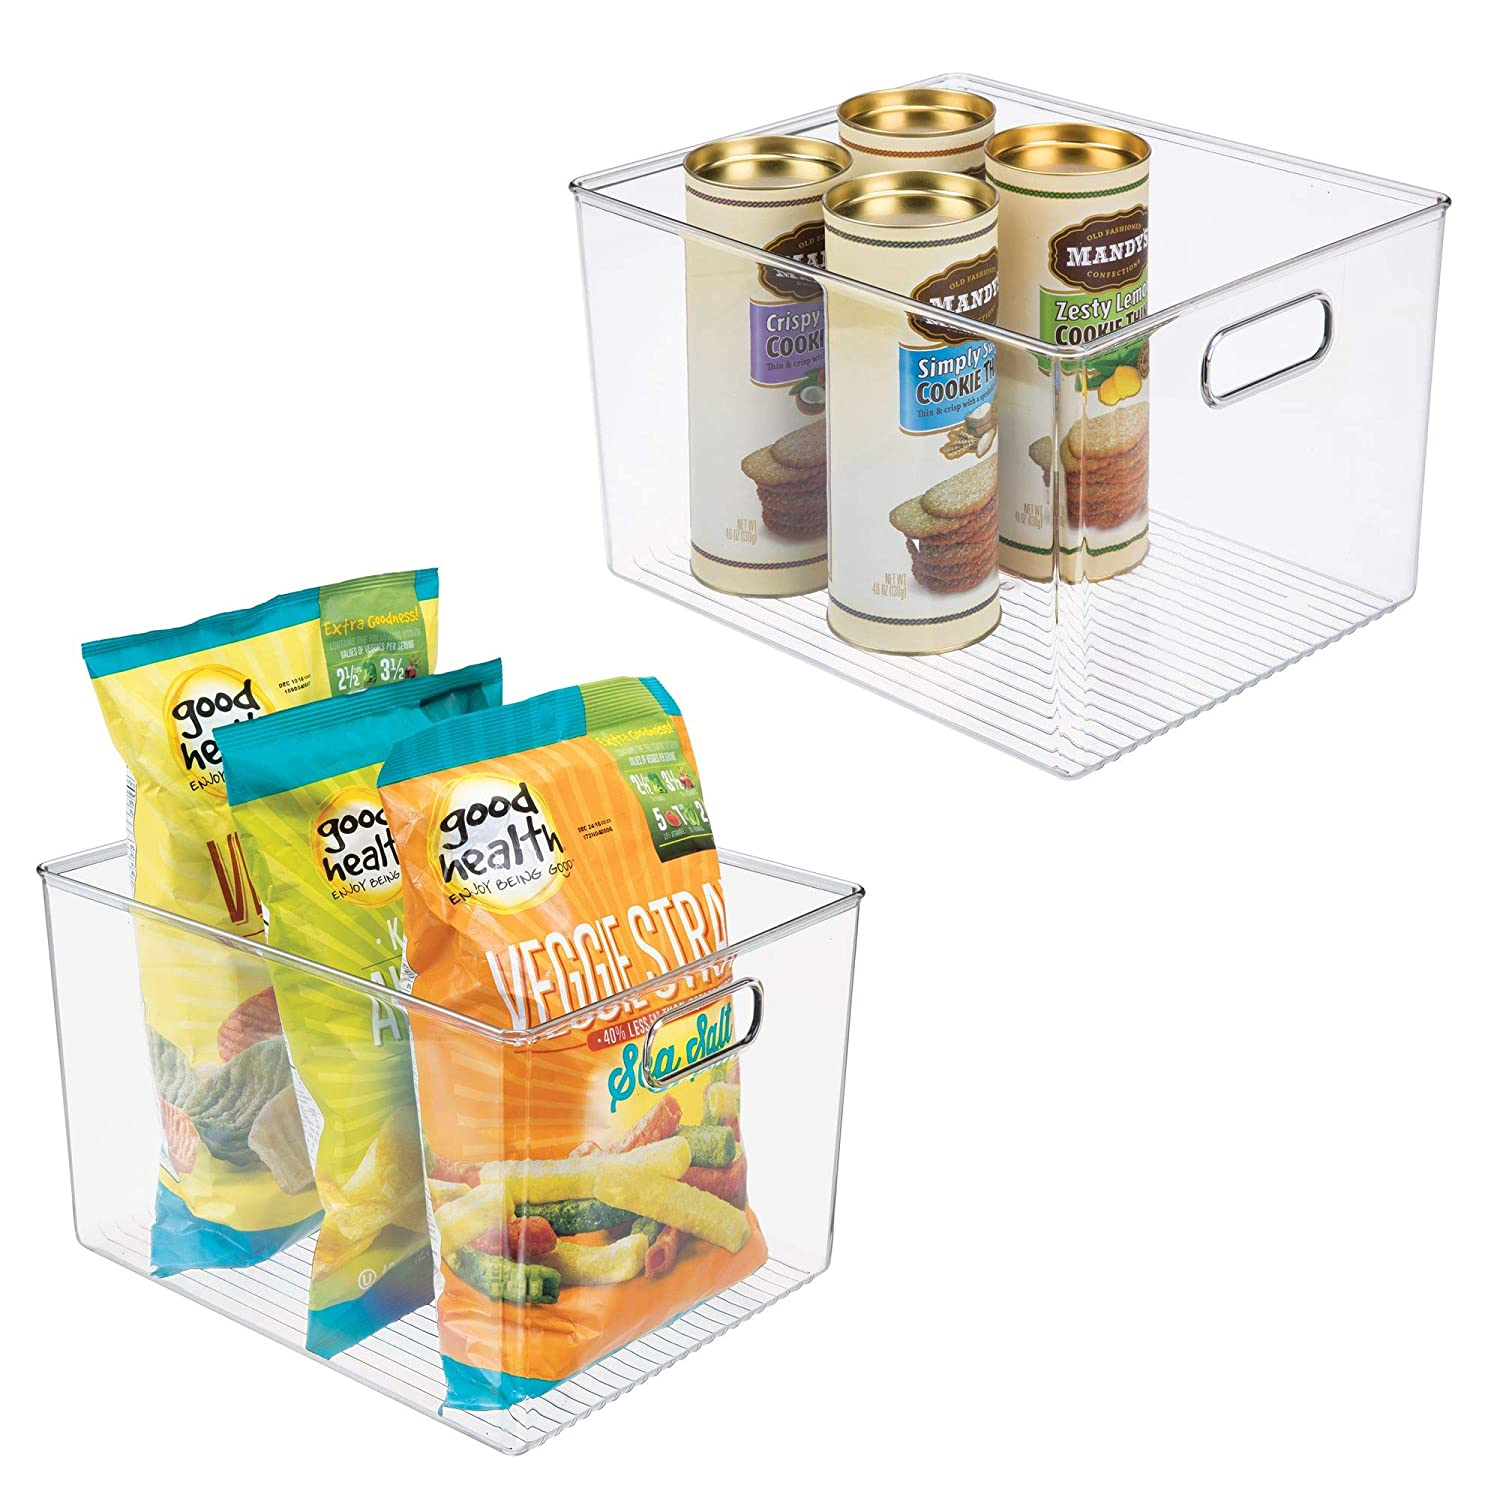 mDesign Plastic Storage Organizer Container Bins Holders with Handles - for Kitchen, Pantry, Cabinet, Fridge/Freezer - Large for Organizing Snacks, Produce, Vegetables, Pasta Food - 2 Pack - Clear